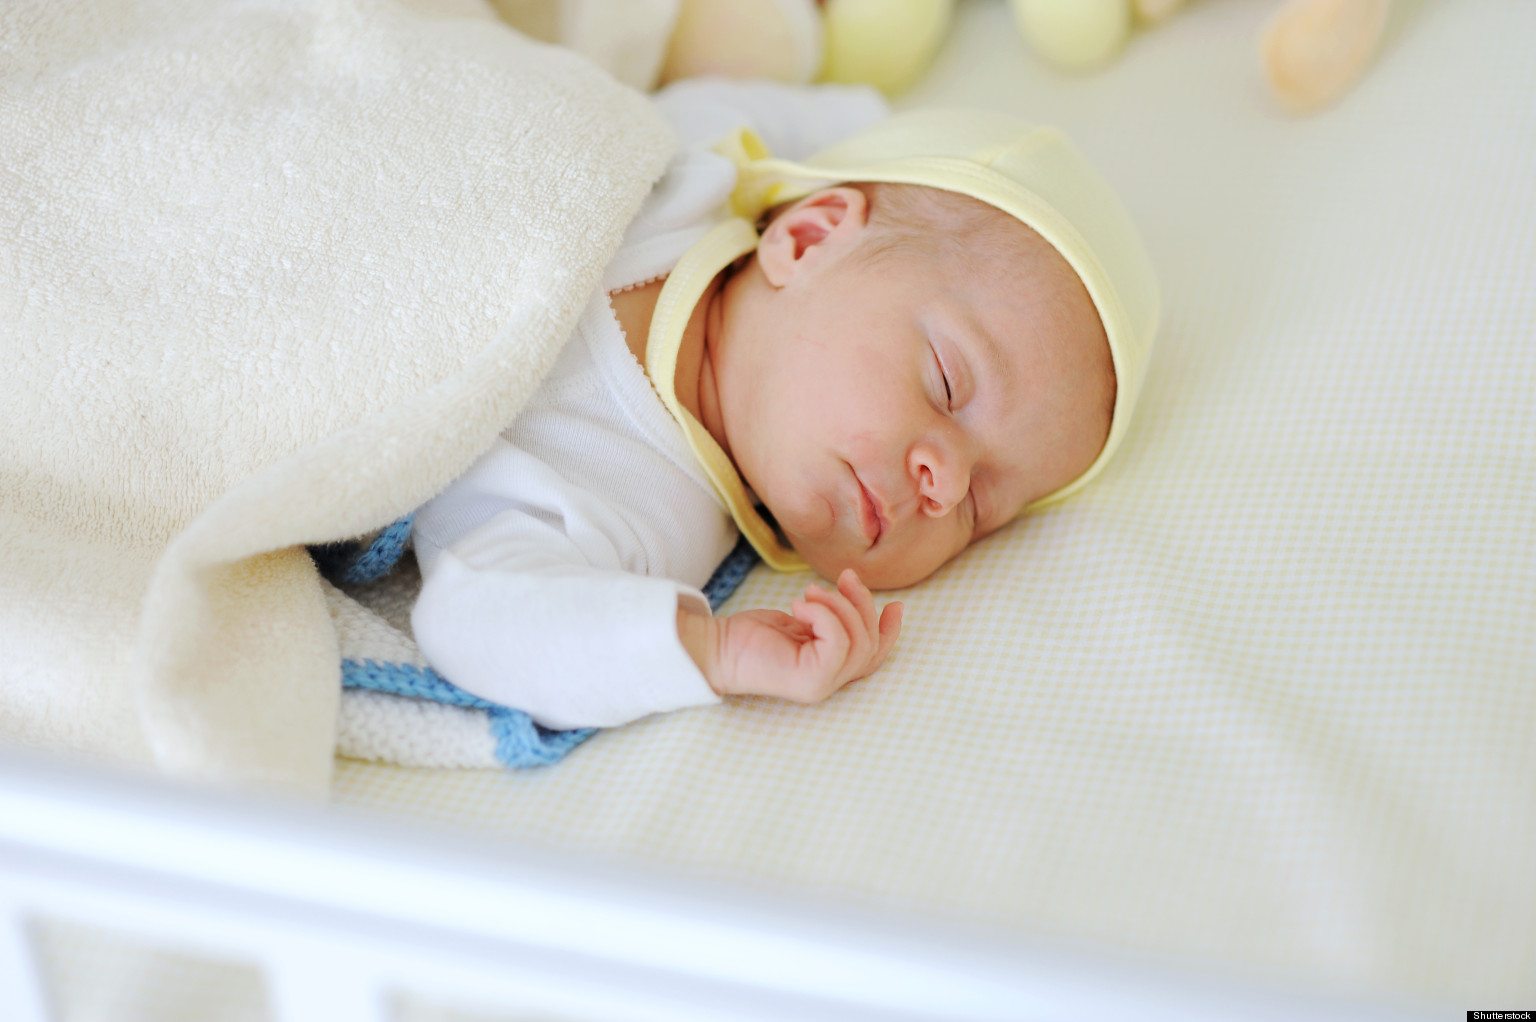 Smart Baby Suit Works To Prevent Sudden Infant Deaths ...